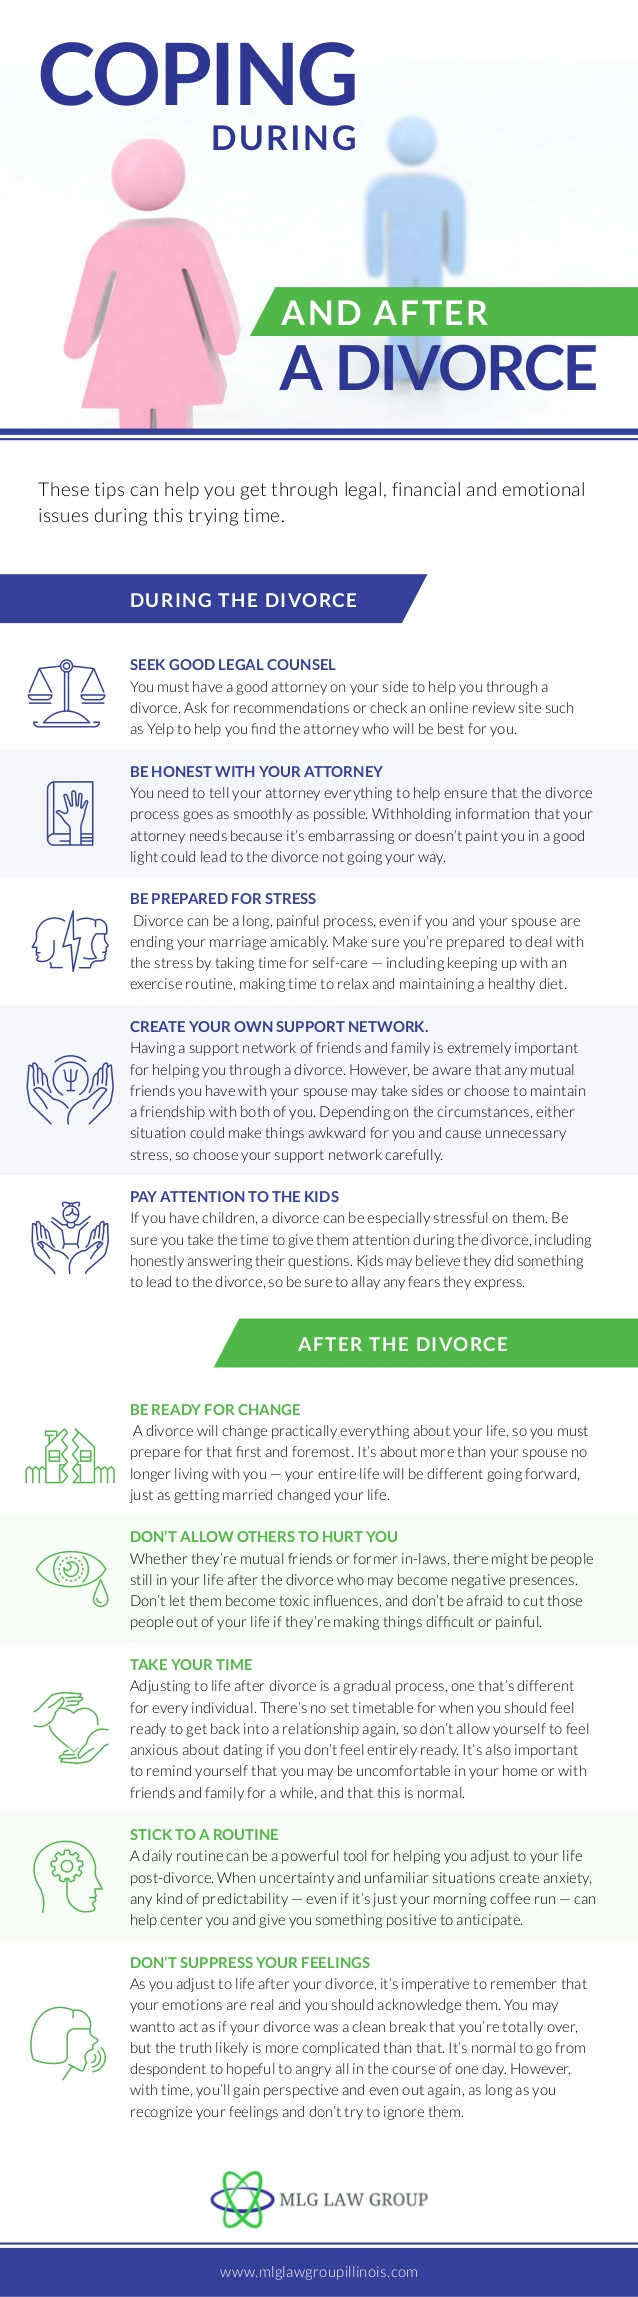 coping during a divorce infographic